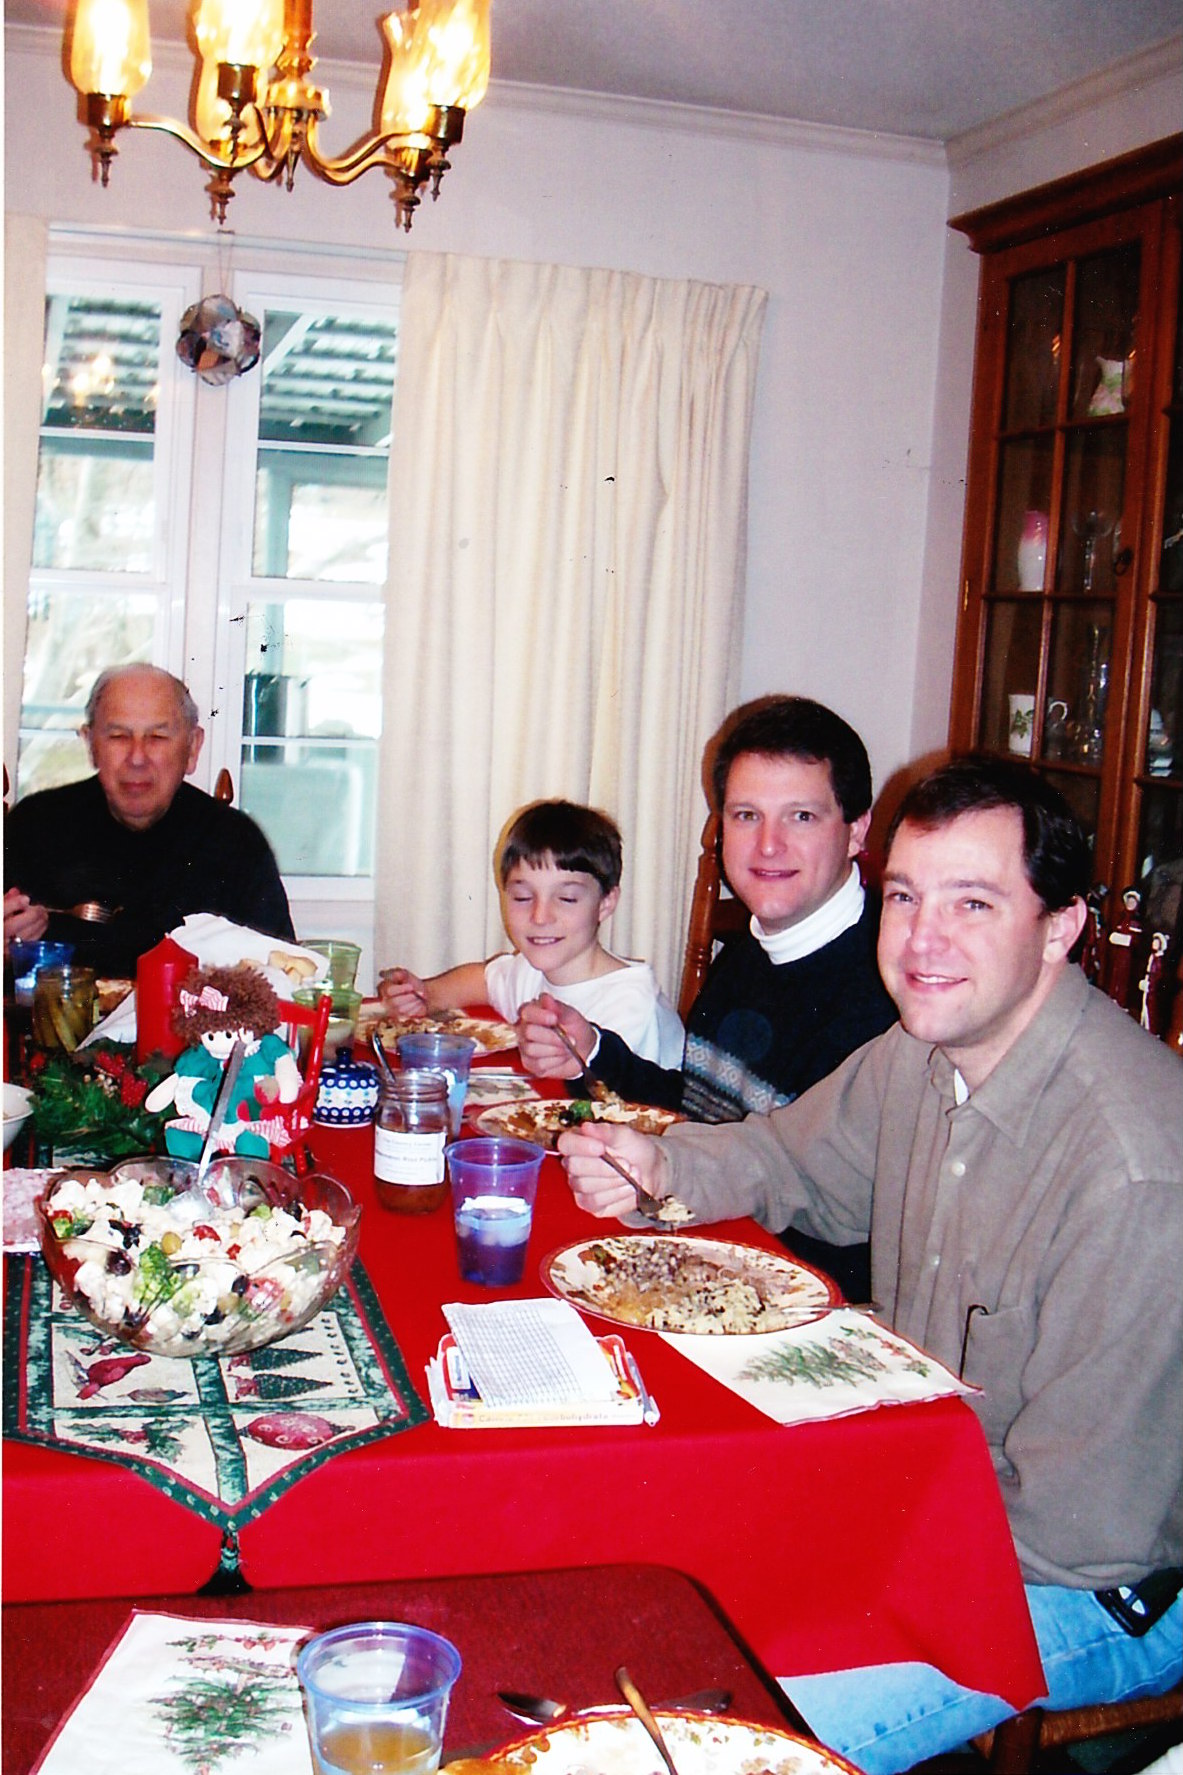 The Family of William H. and Carolyn Fisher Johnson